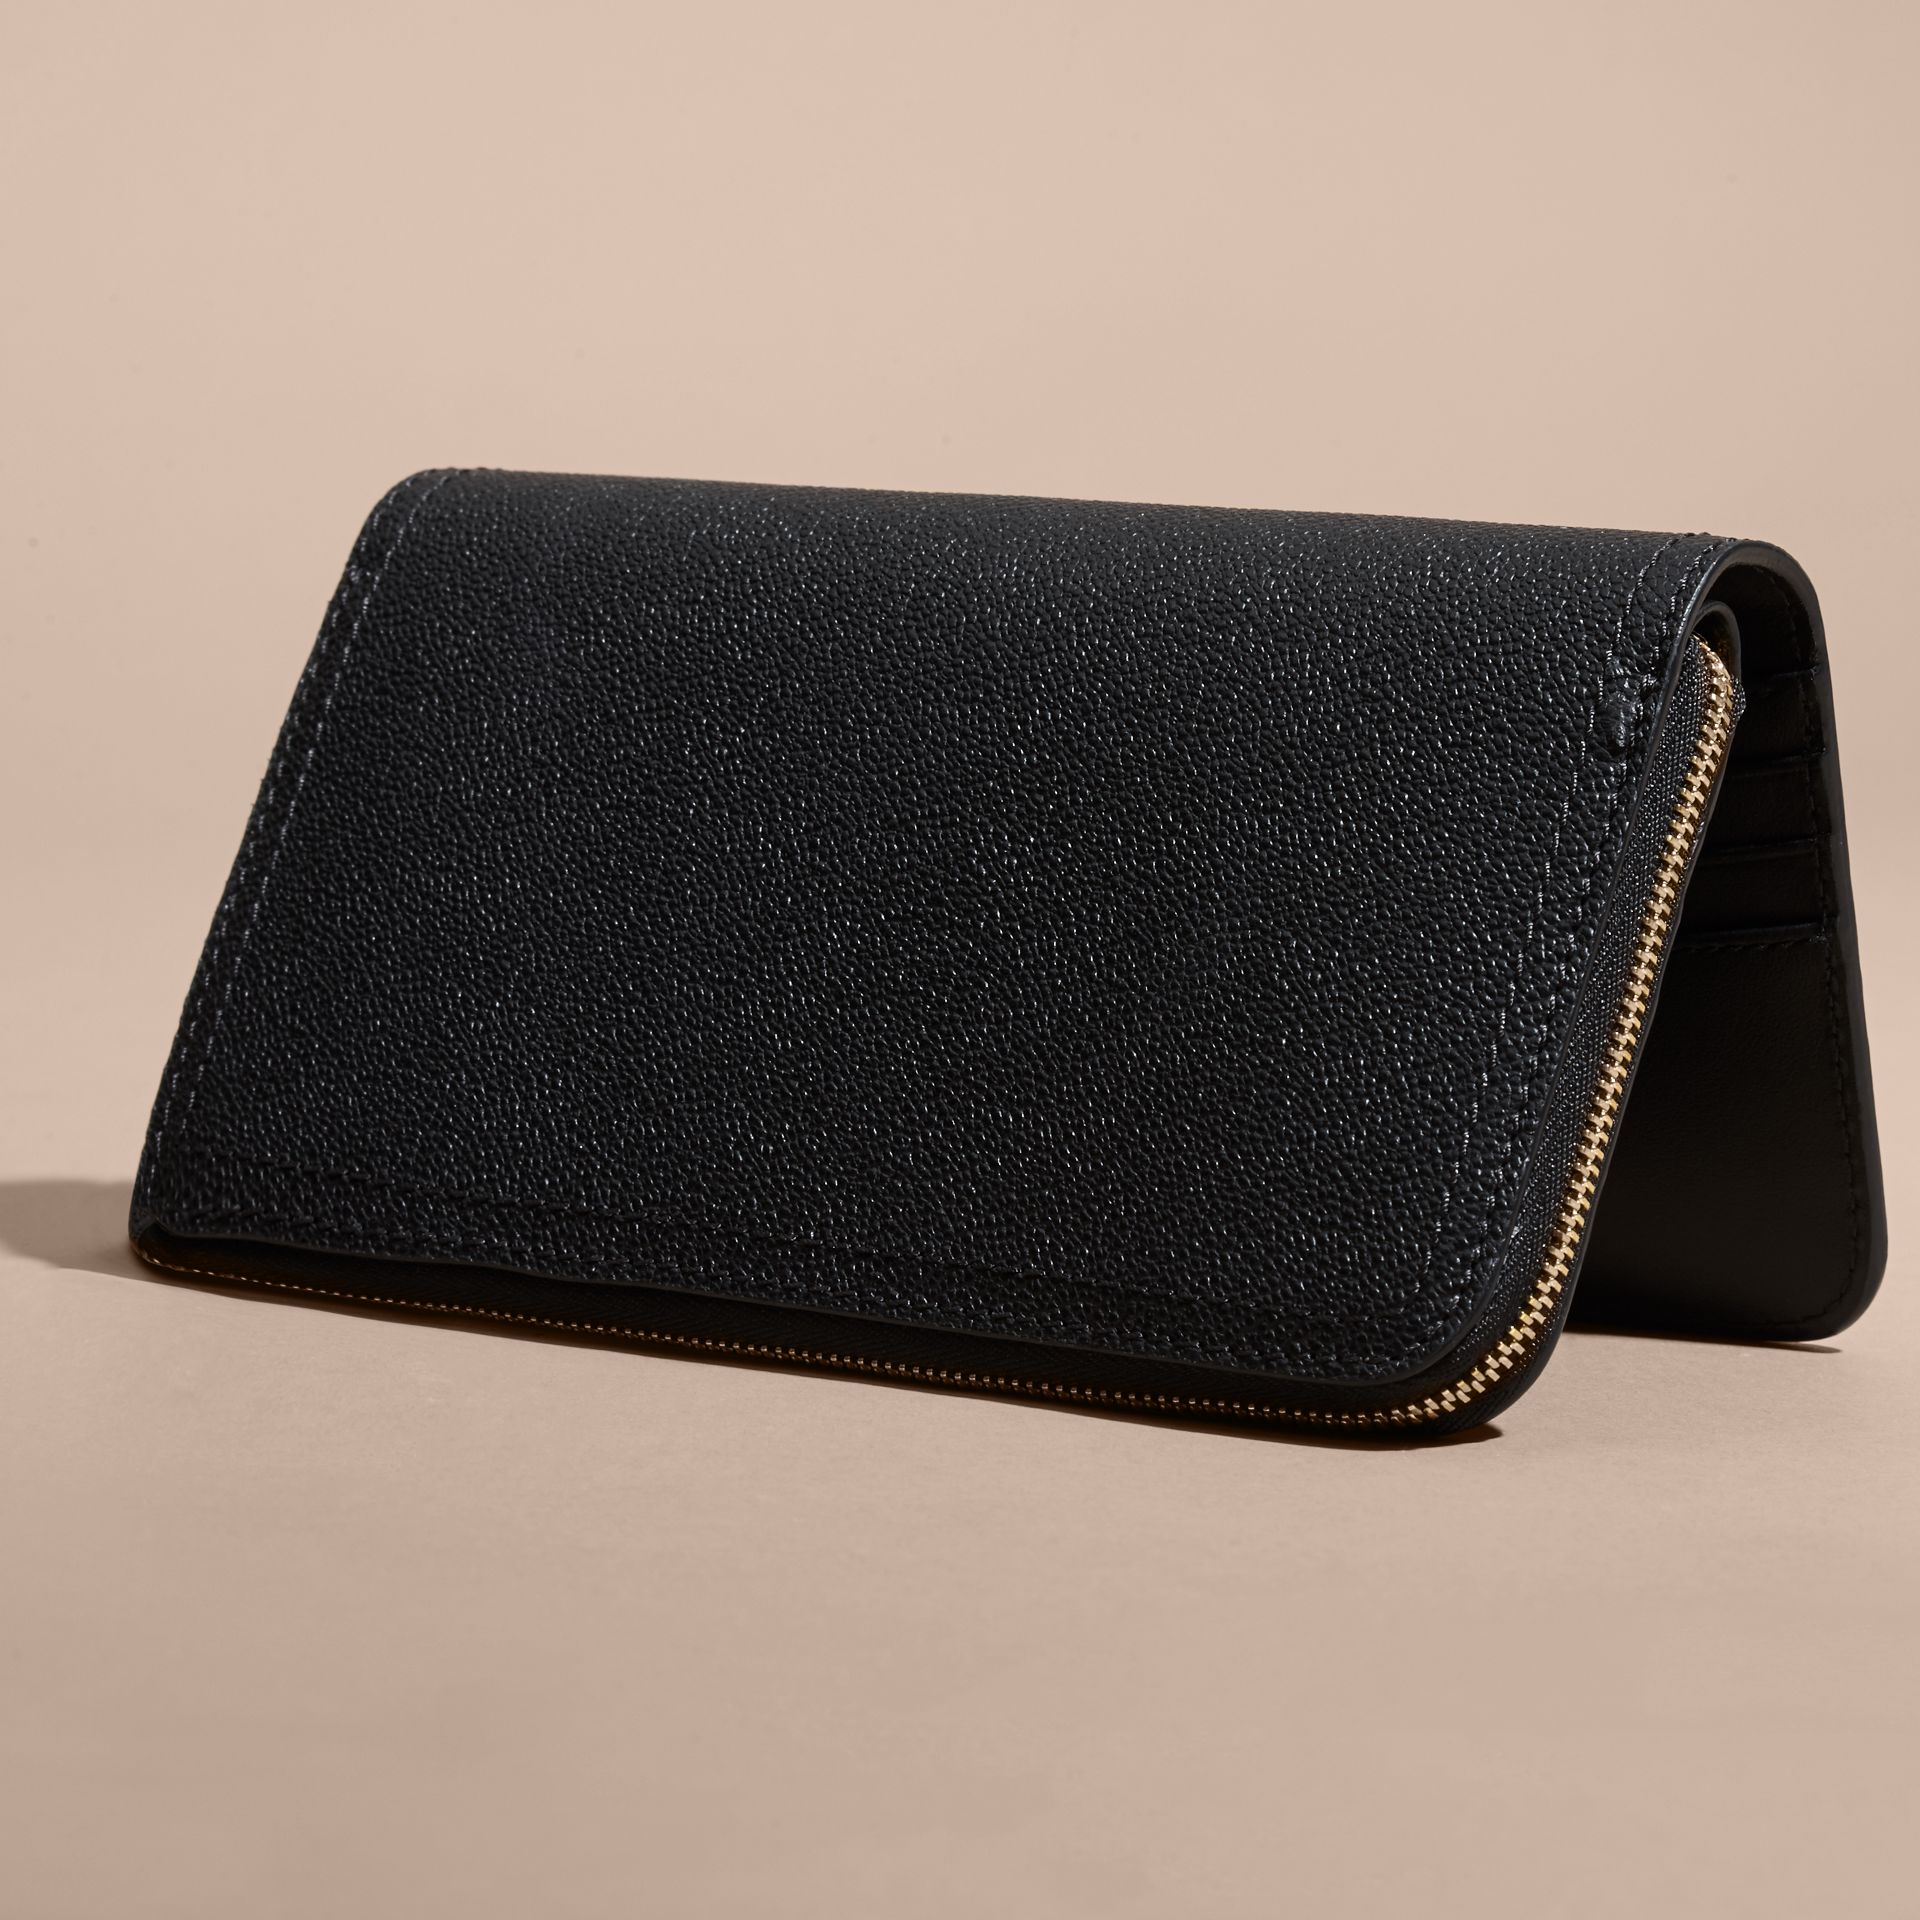 Grainy Leather Ziparound Wallet in Black - Women | Burberry - gallery image 3